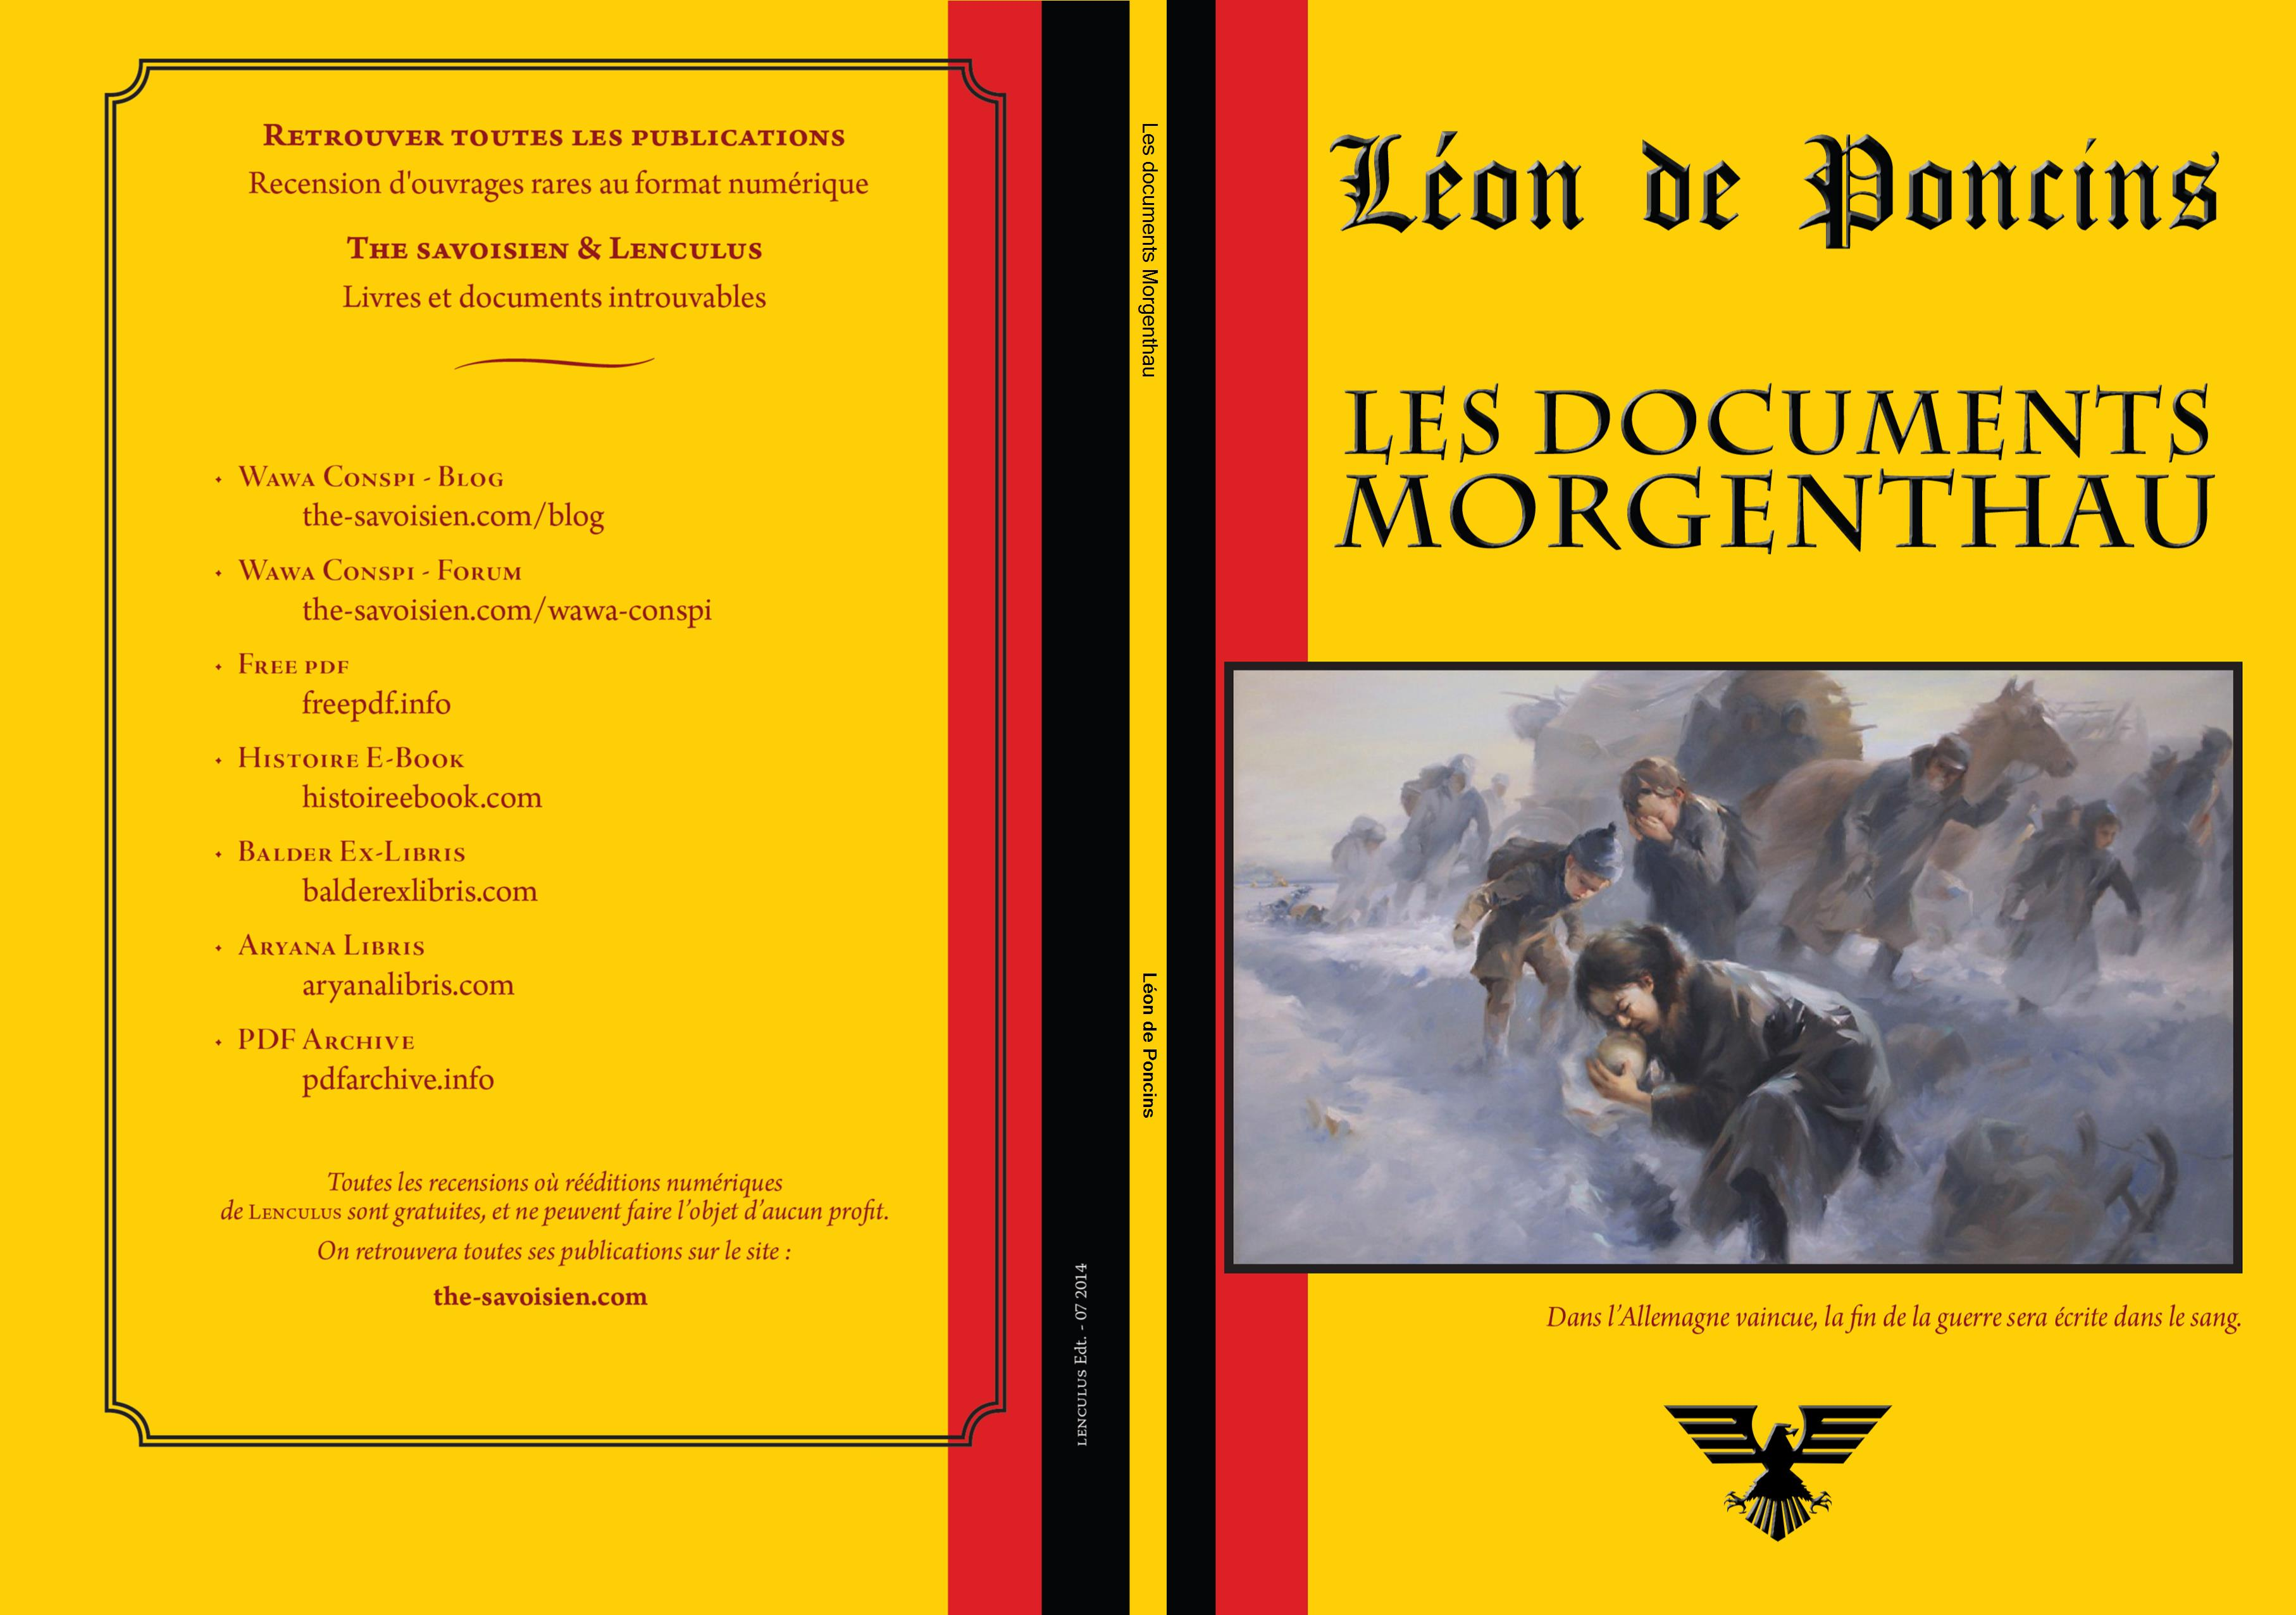 Les documents Morgenthau cover image